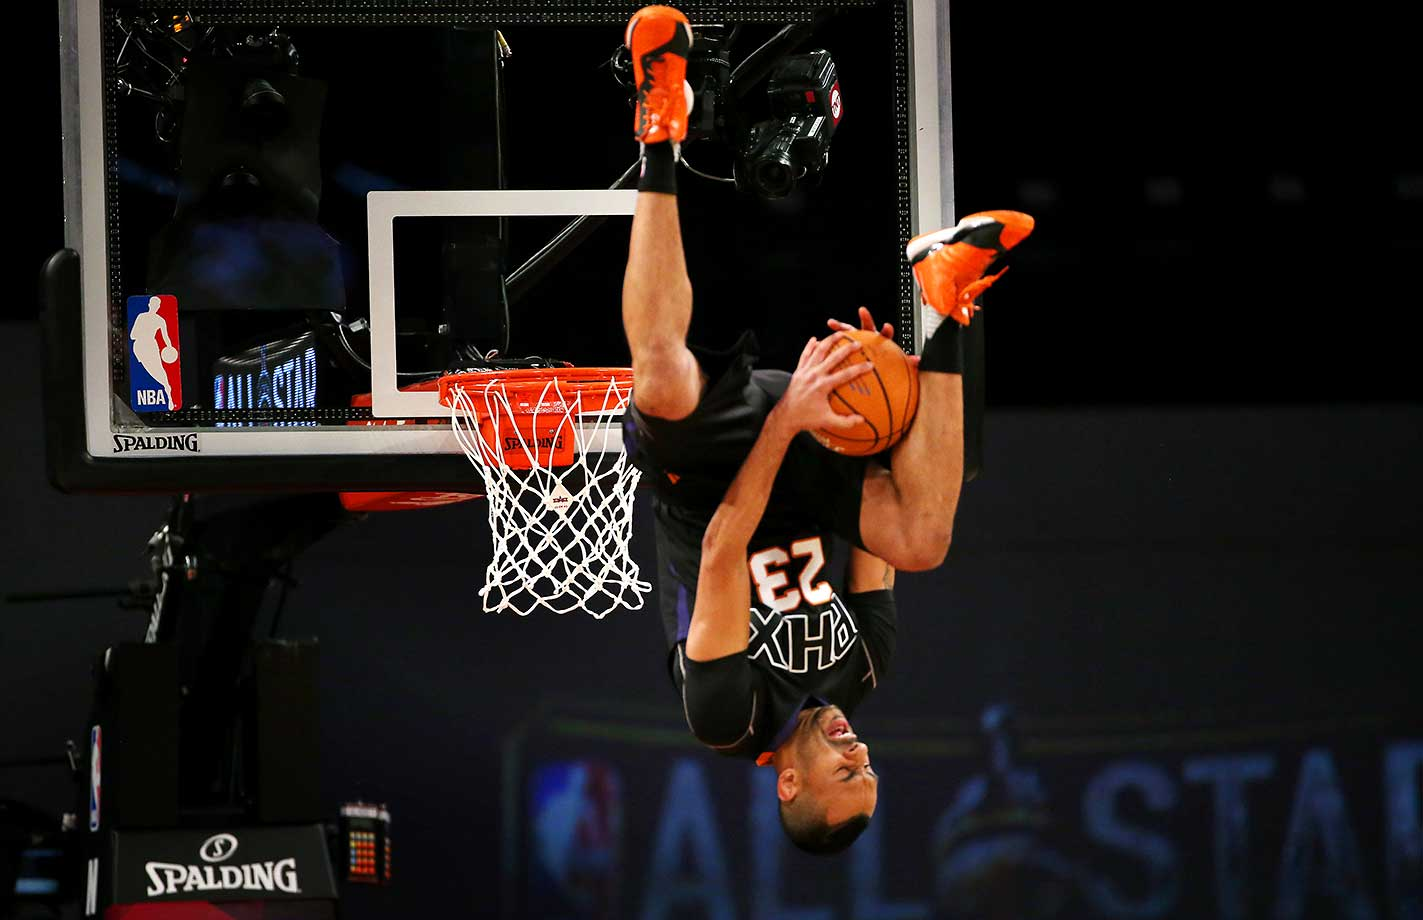 The Phoenix Suns dunk team entertains during the NBA All-Star Game.